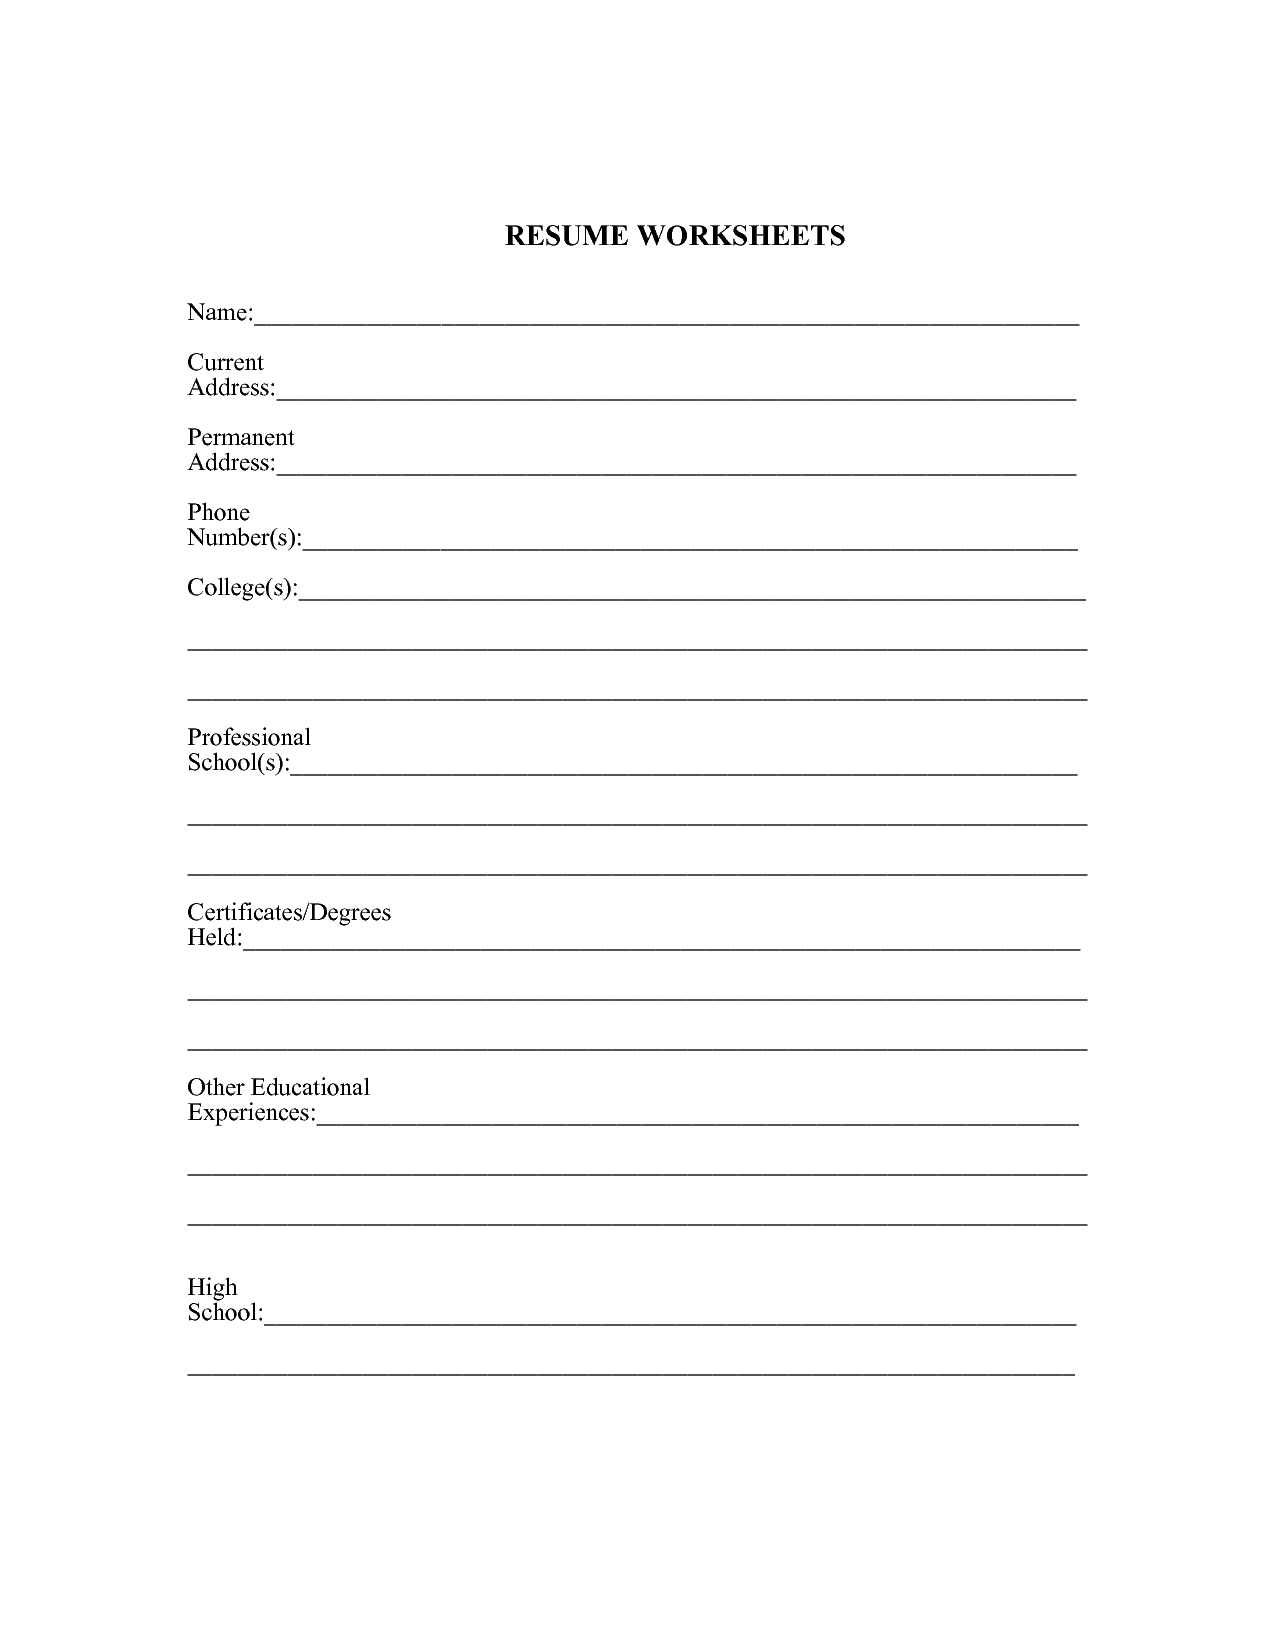 15 Best Images Of Career Experience Worksheets